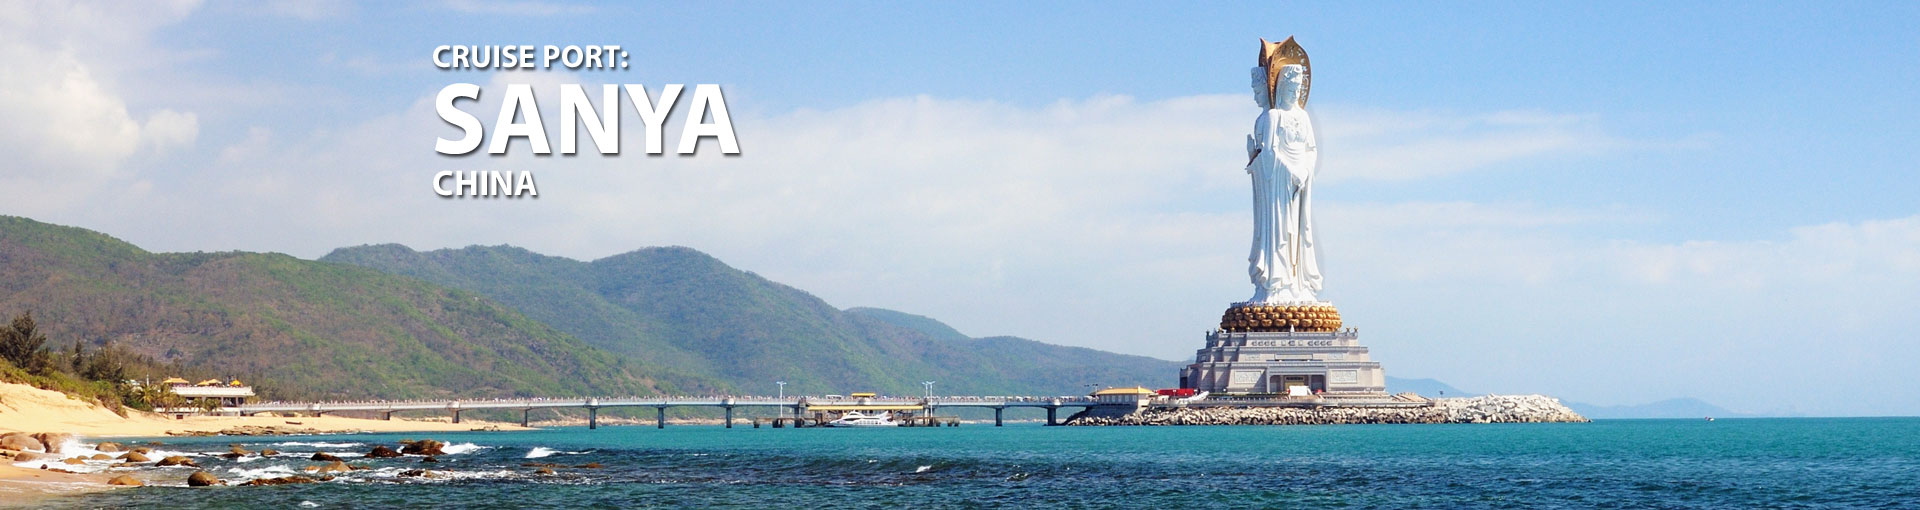 Cruises to Sanya, China